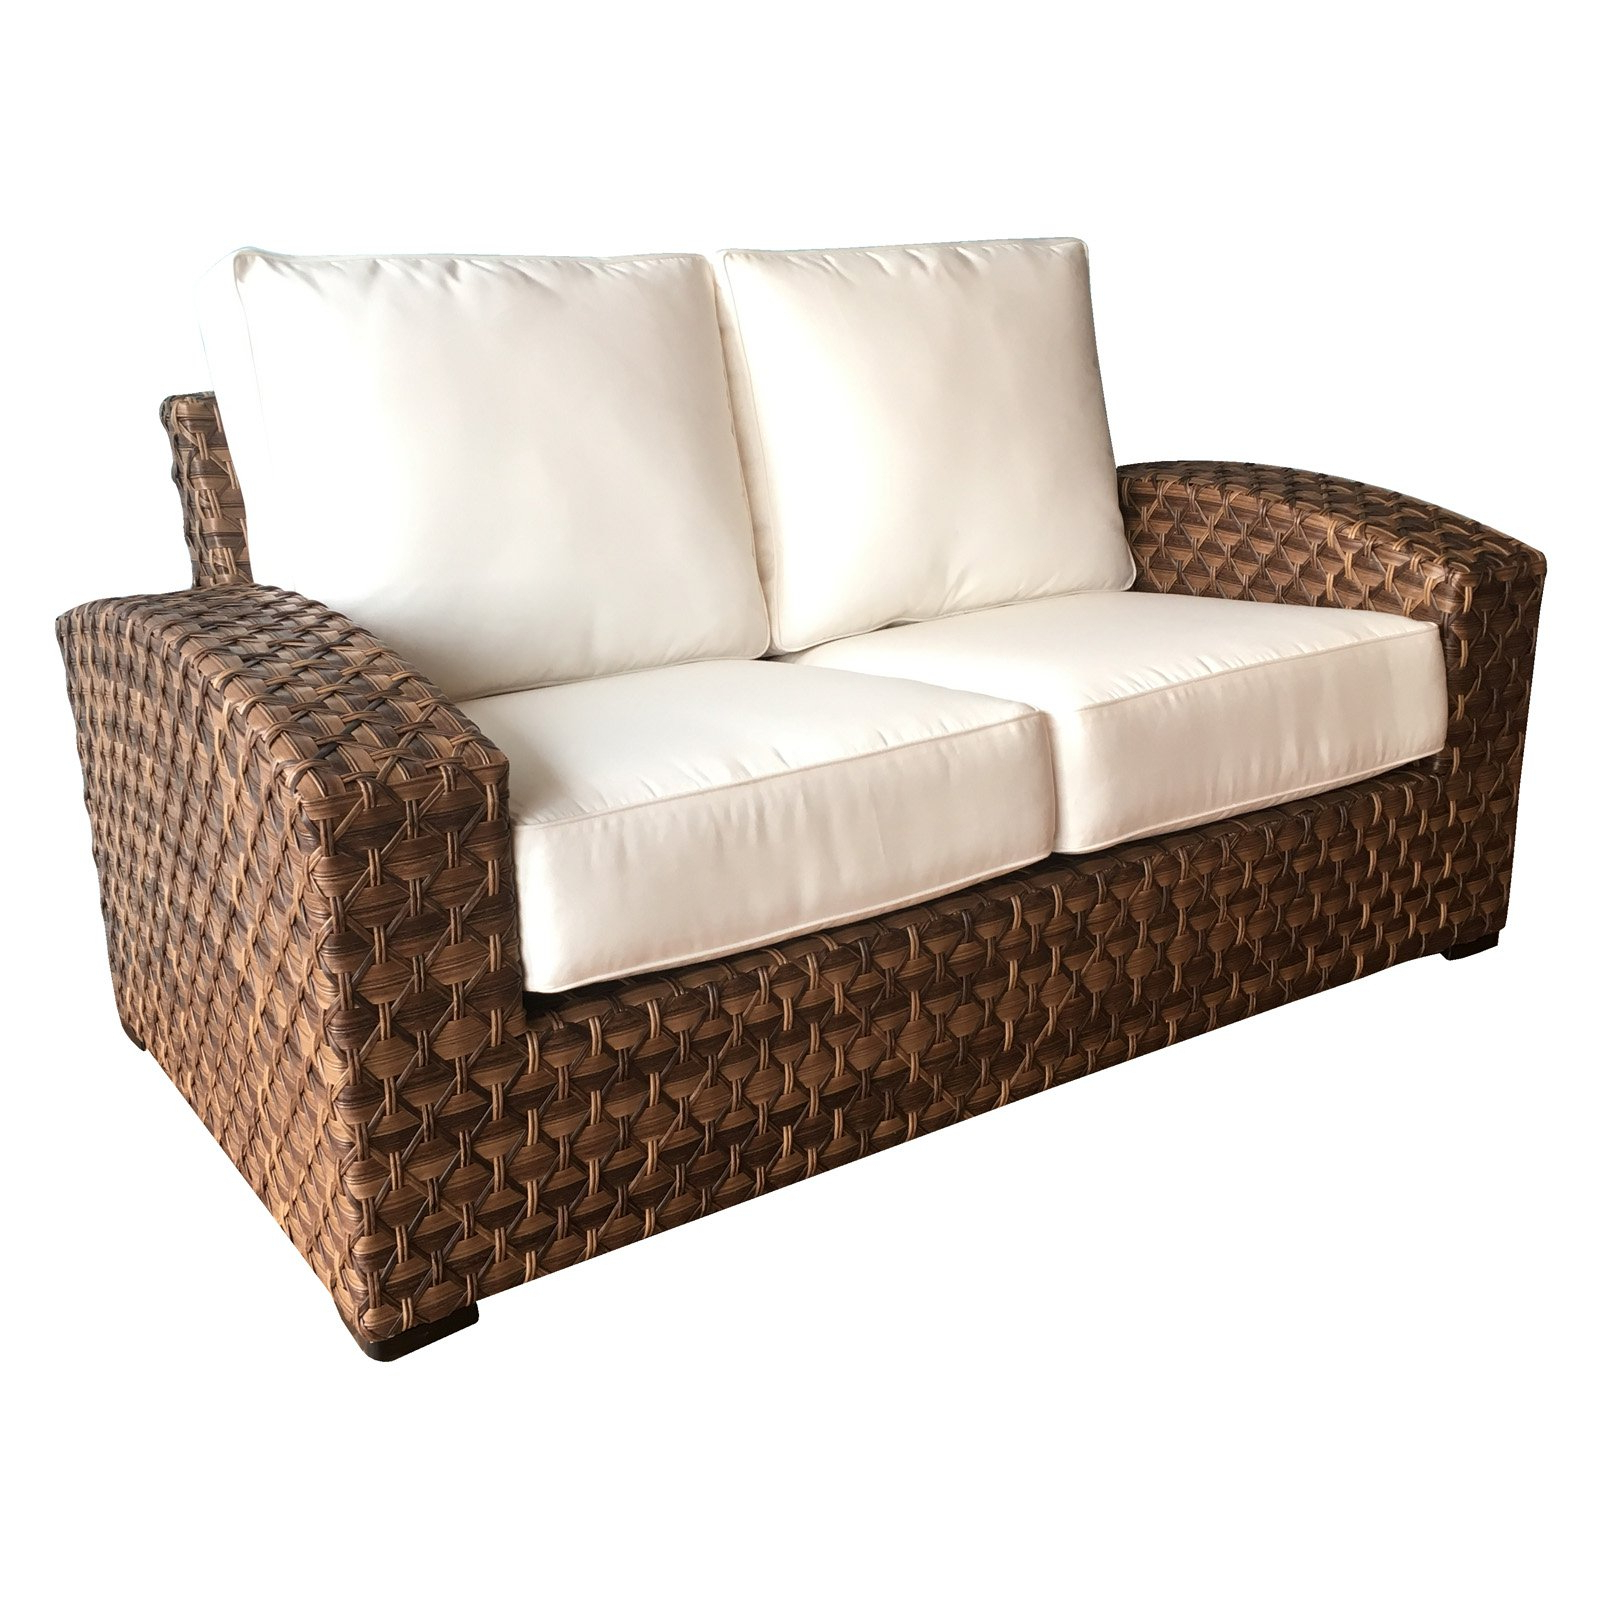 Avadi Outdoor Sofas & Ottomans 3 Piece Set Pertaining To Well Known Outdoor Wicker Paradise Westbury Loveseat With Sunbrella (View 8 of 25)